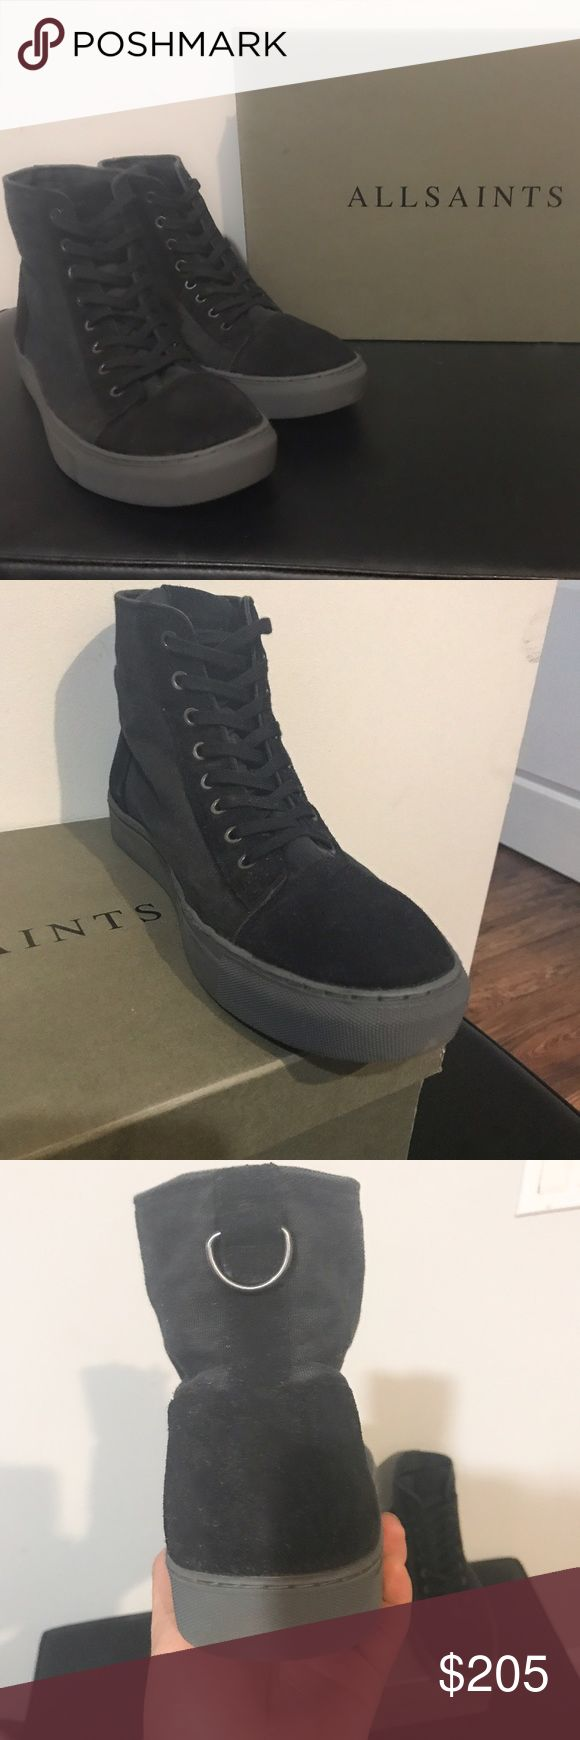 All Saints Men's Boots (worn once) Perfect condition. Made by All Saints. Men's size 44 (10.5 USA). Comes with original box. Paid $340 for them All Saints Shoes Boots